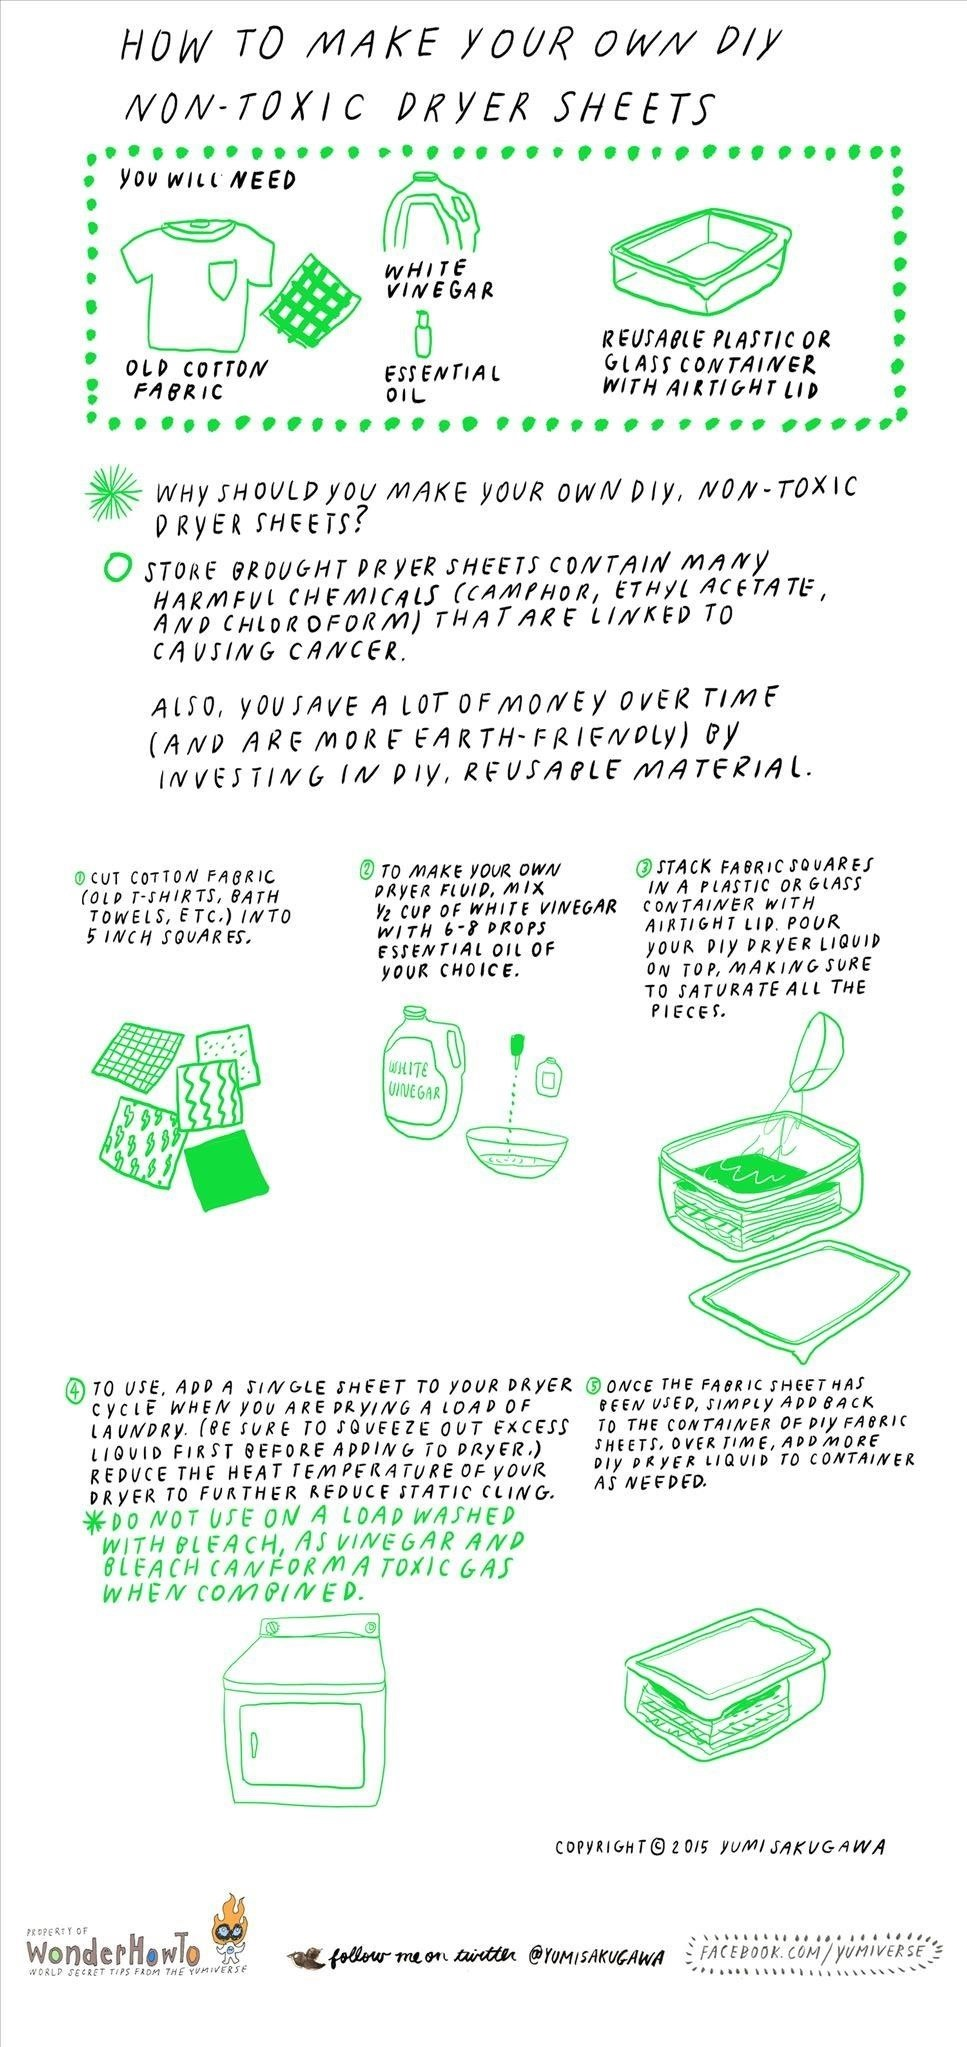 How To Make Your Own Non Toxic Dryer Sheets The Secret Yumiverse Wonderhowto